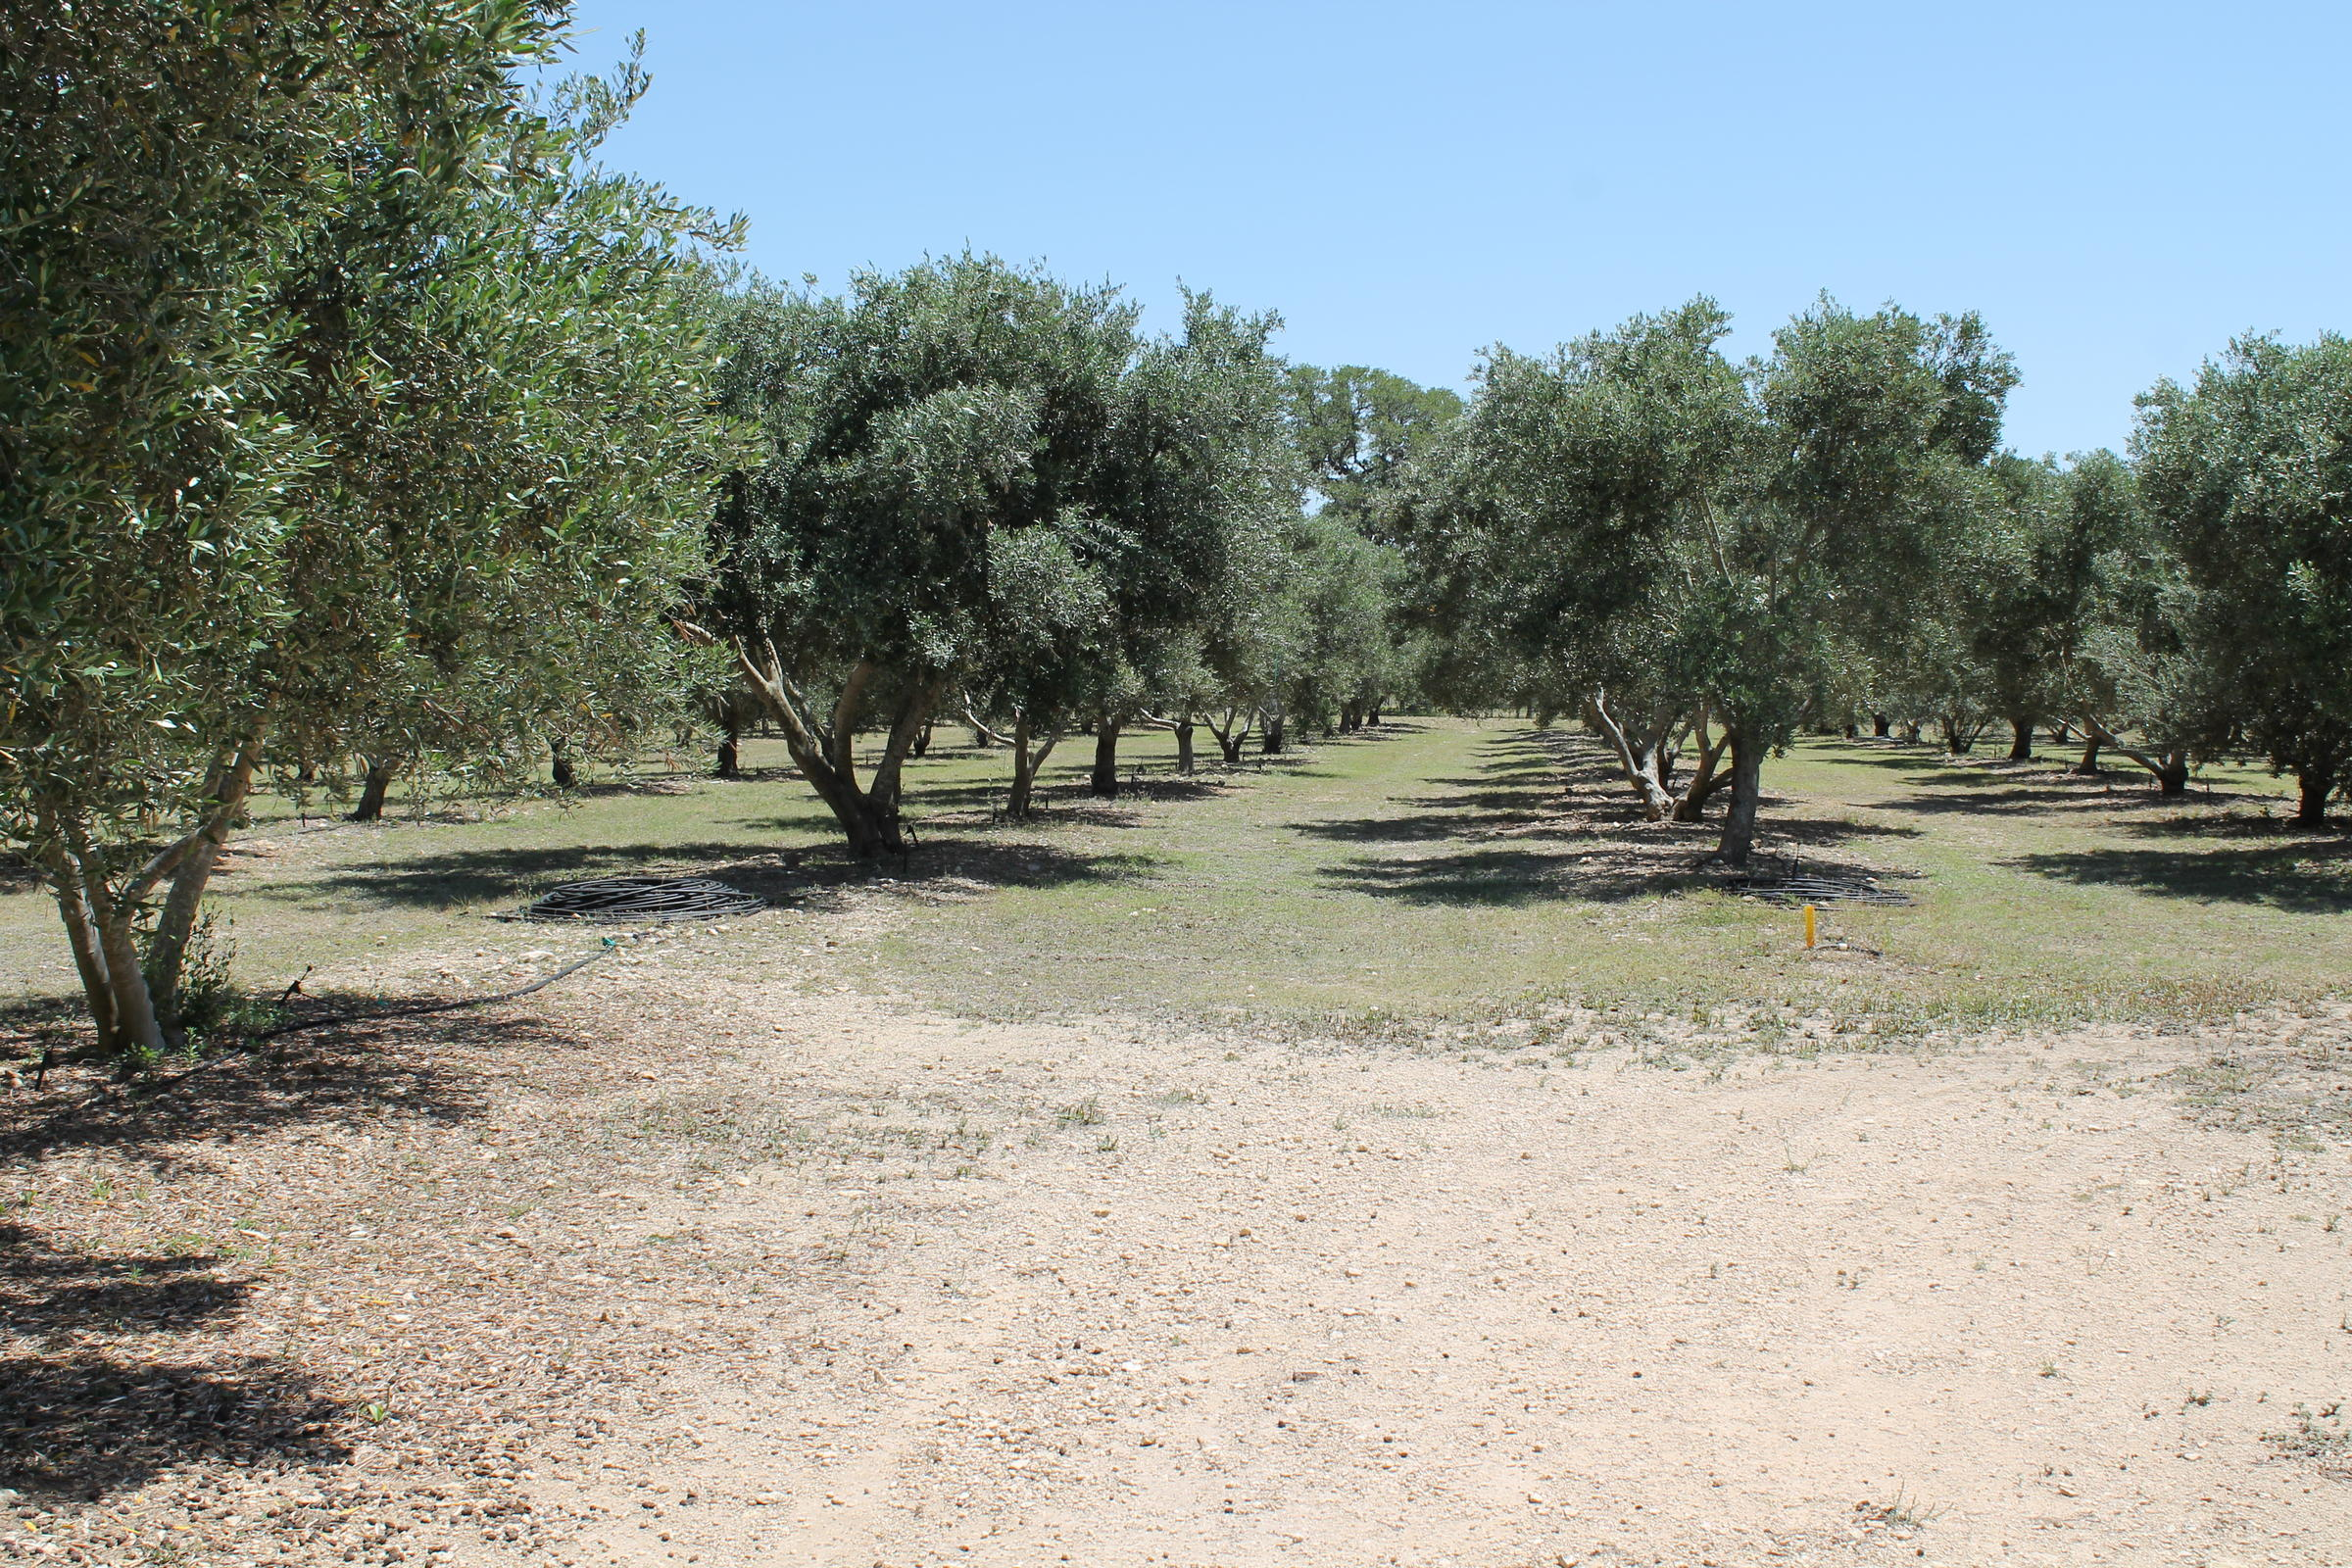 Olive Oil Is Far From Being The Next Boom In Texas, But The